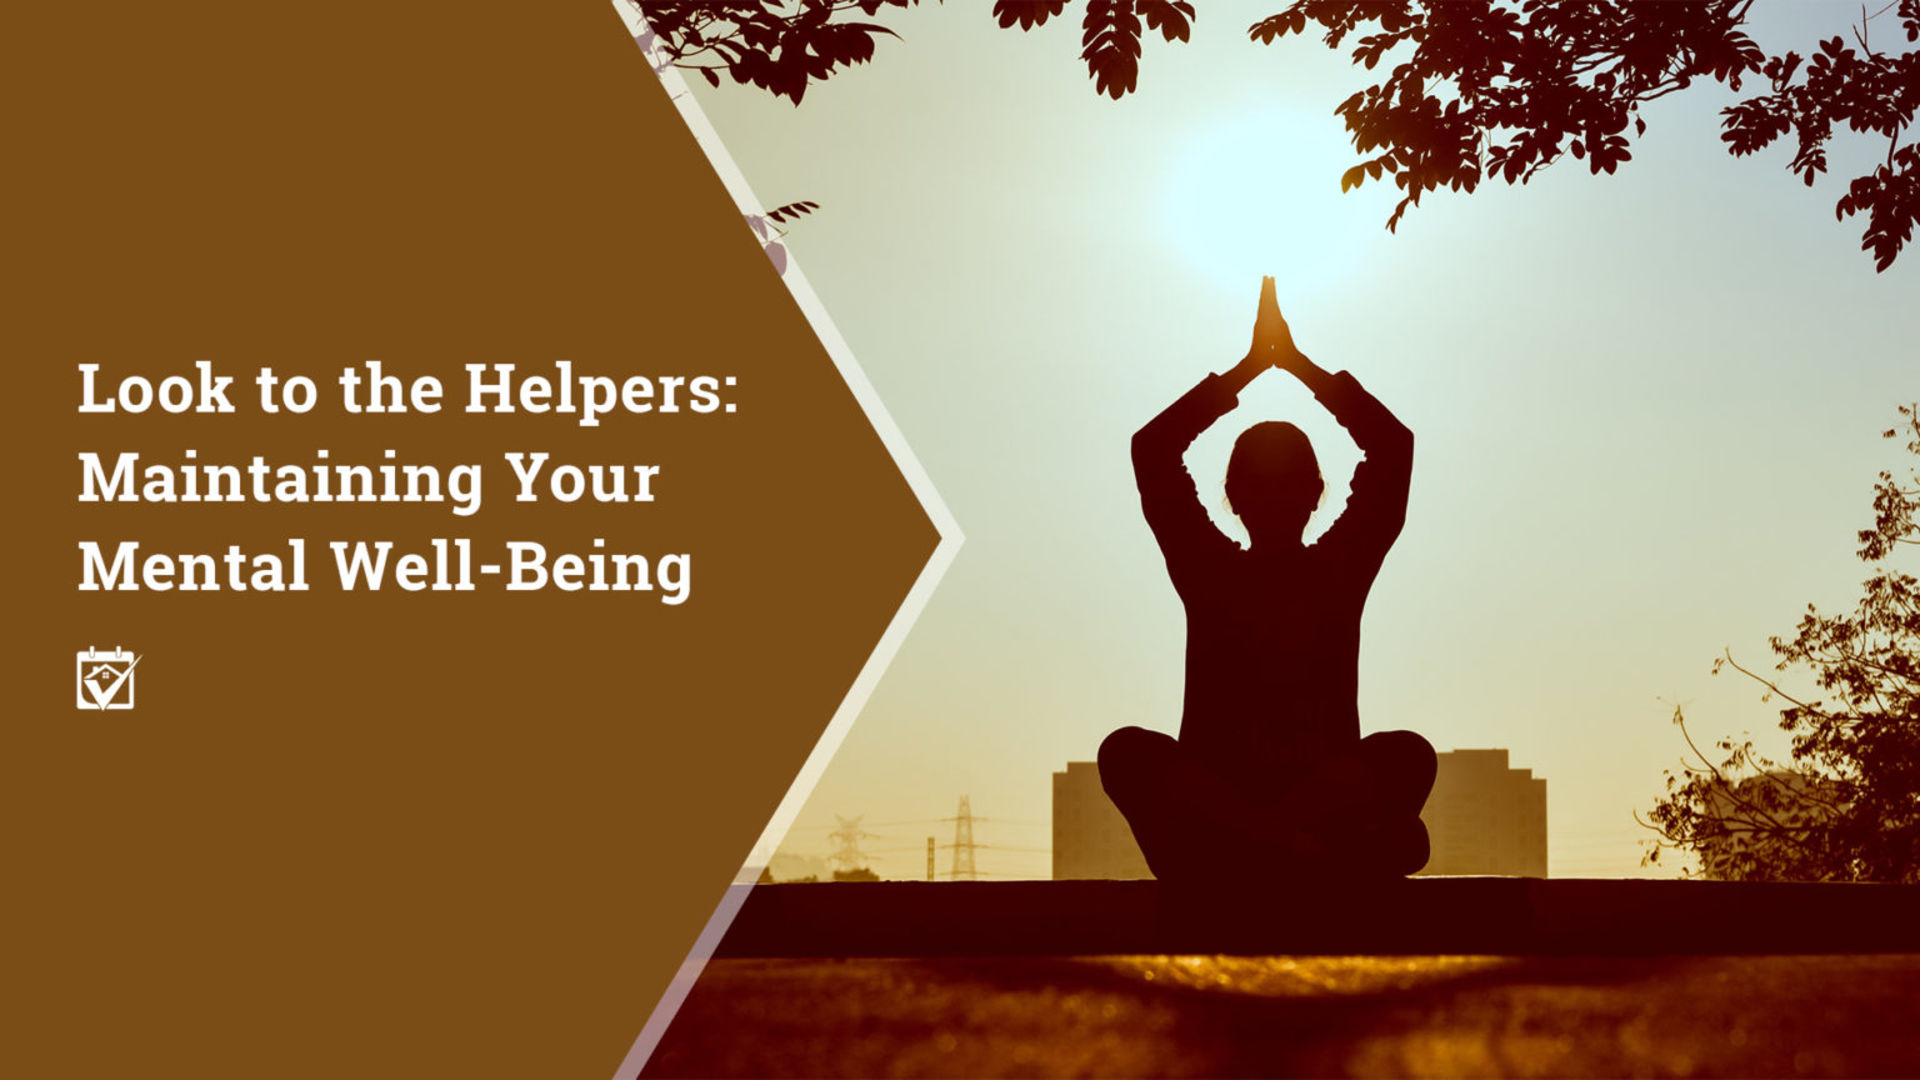 Look to the Helpers:  Maintaining Your Mental Well-Being